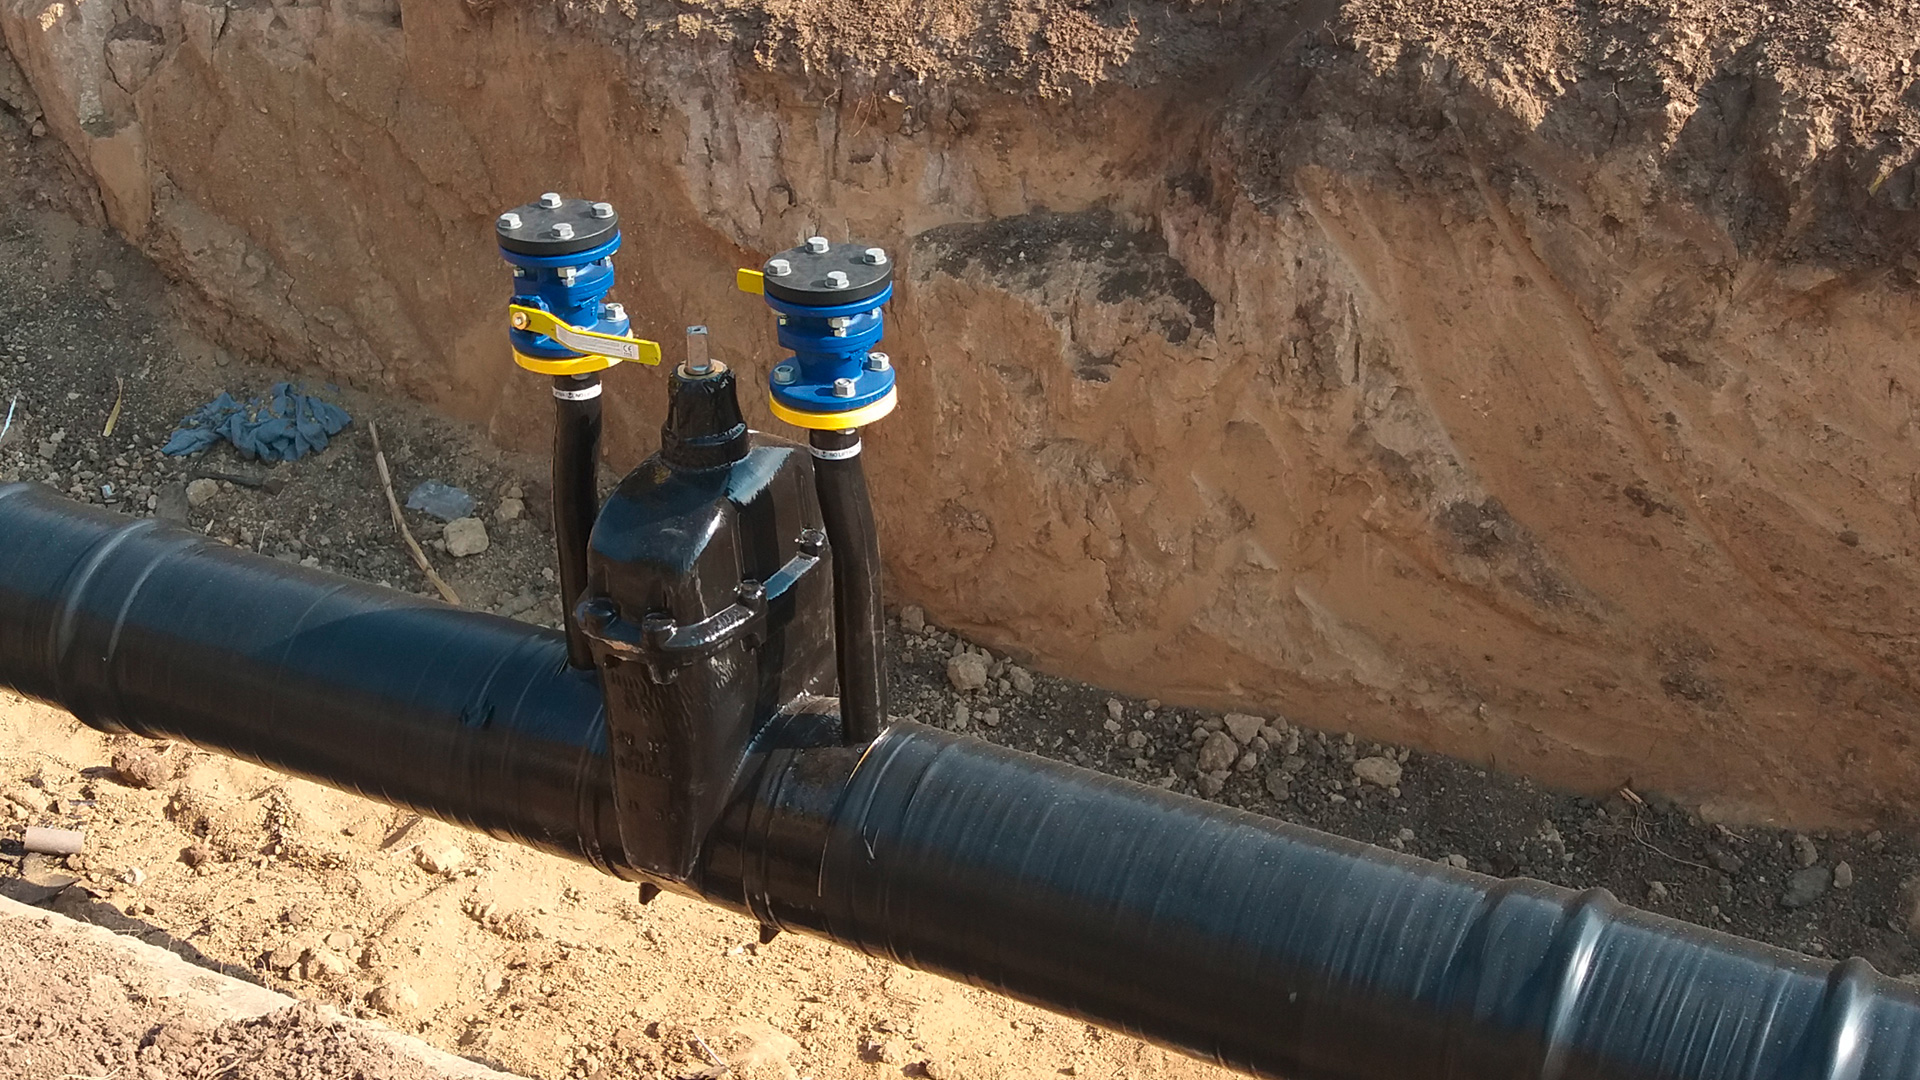 AVK gate valve for gas with purge points installed in Brno, Czech Republic